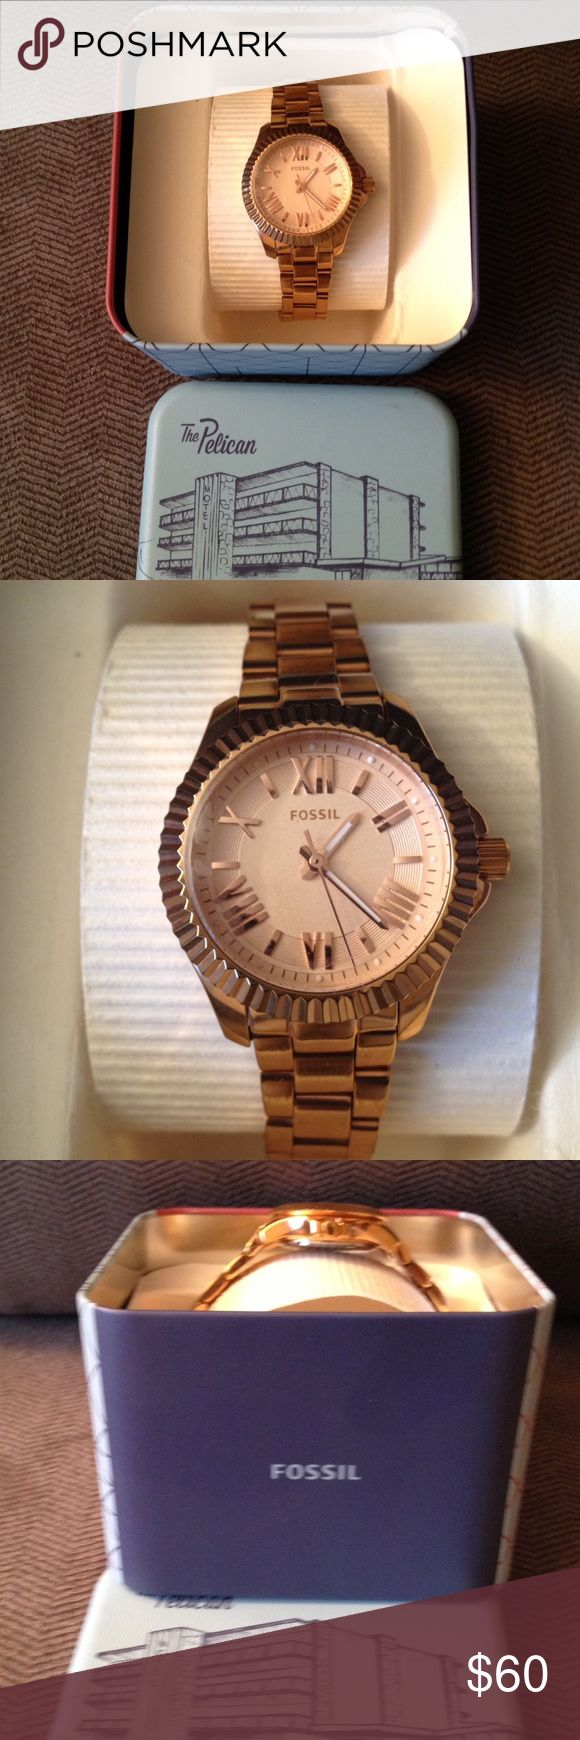 Ladies Fossil Rose Fold watch Beautiful ladies Fossil rose gold watch. Very stylish and sophisticated look. Great price for a watch that can be worn for any occasion. Fossil Jewelry